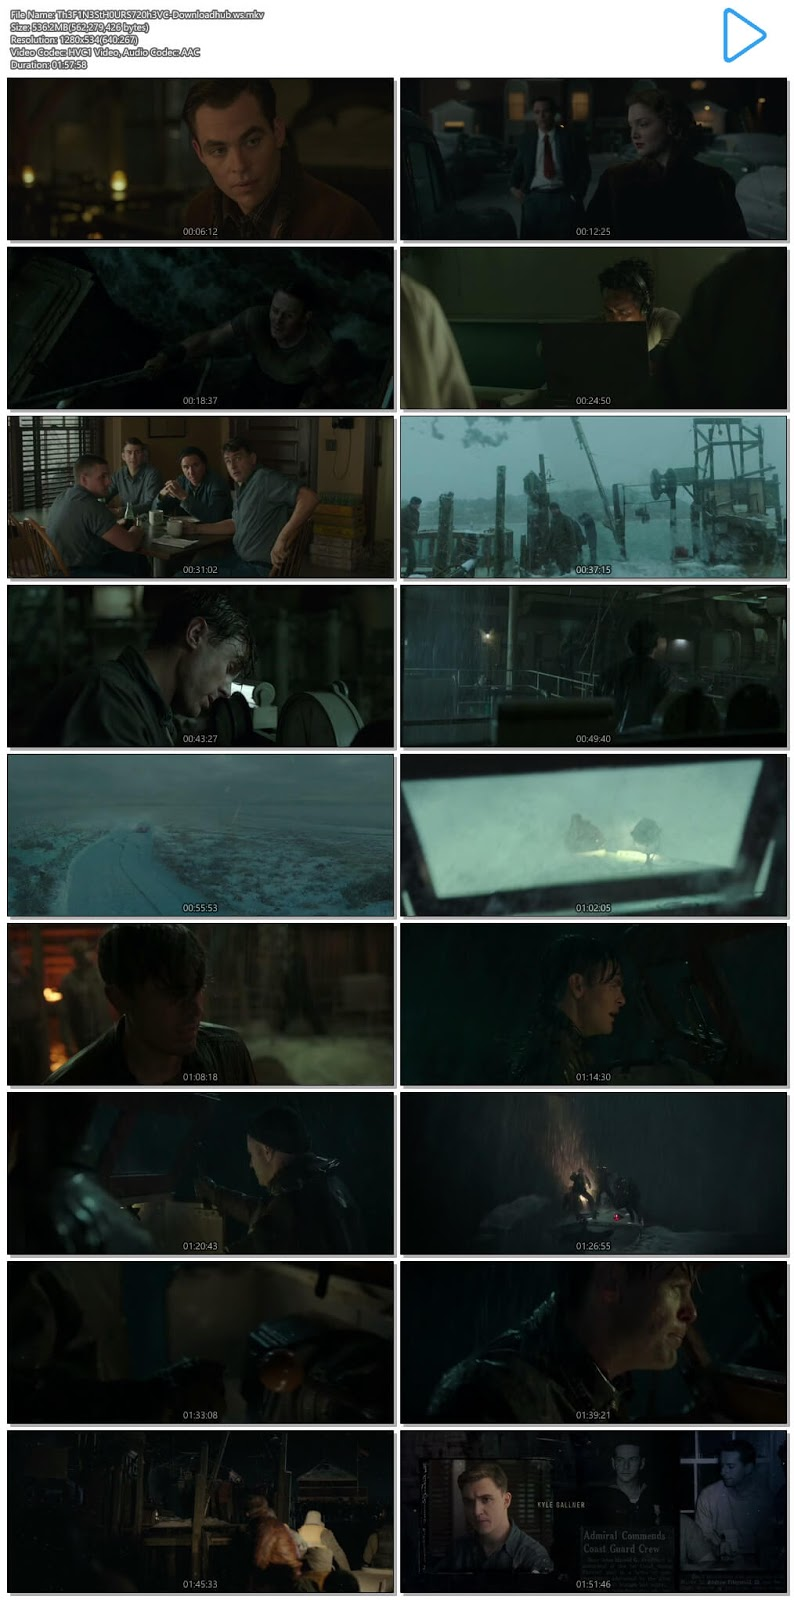 The Finest Hours 2016 Hindi Dual Audio 720p HEVC BluRay Free Download